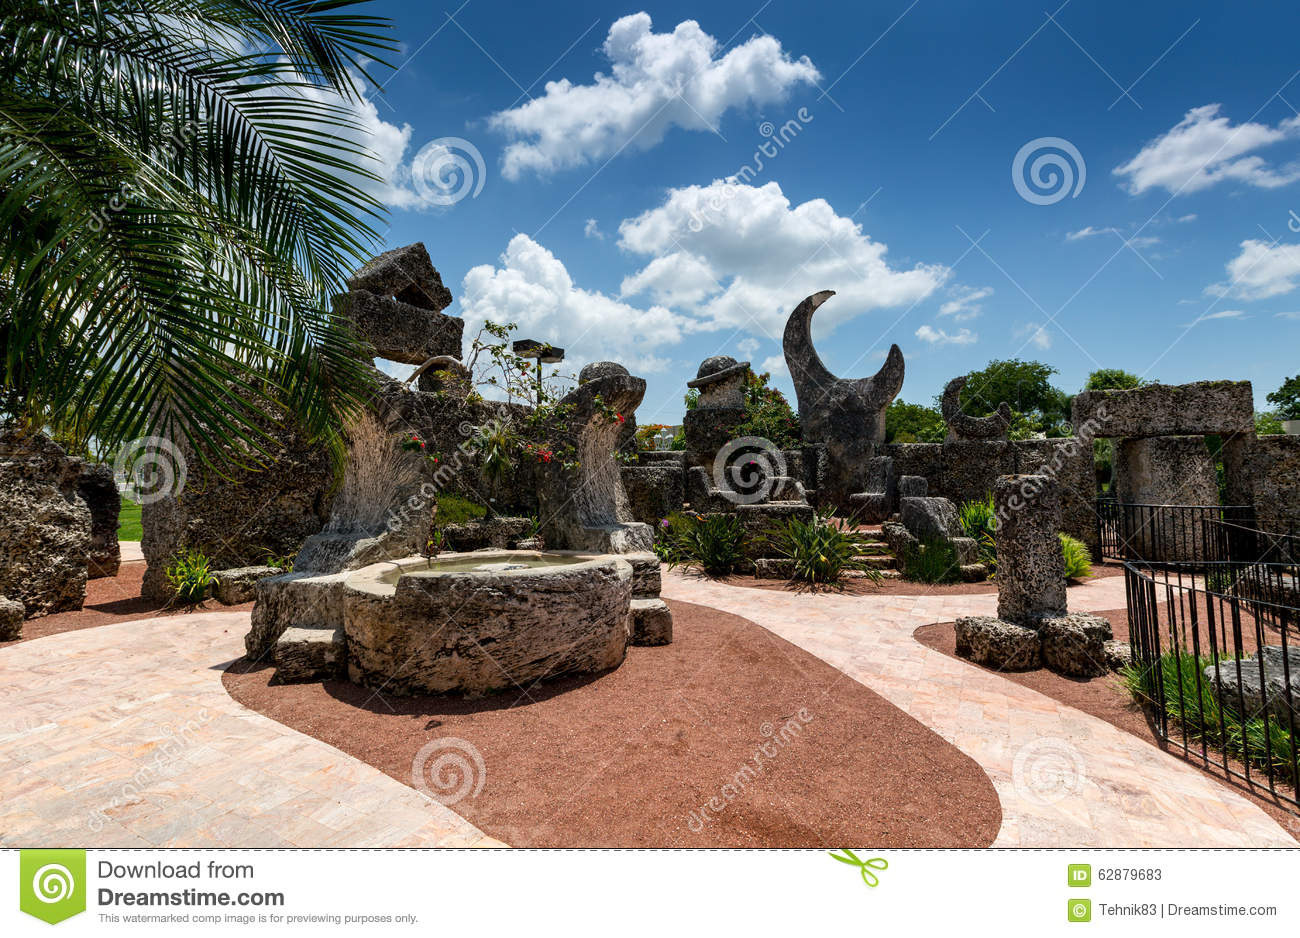 Homestead (FL) United States  city images : homestead fl june coral castle to north city o florida stone structure ...